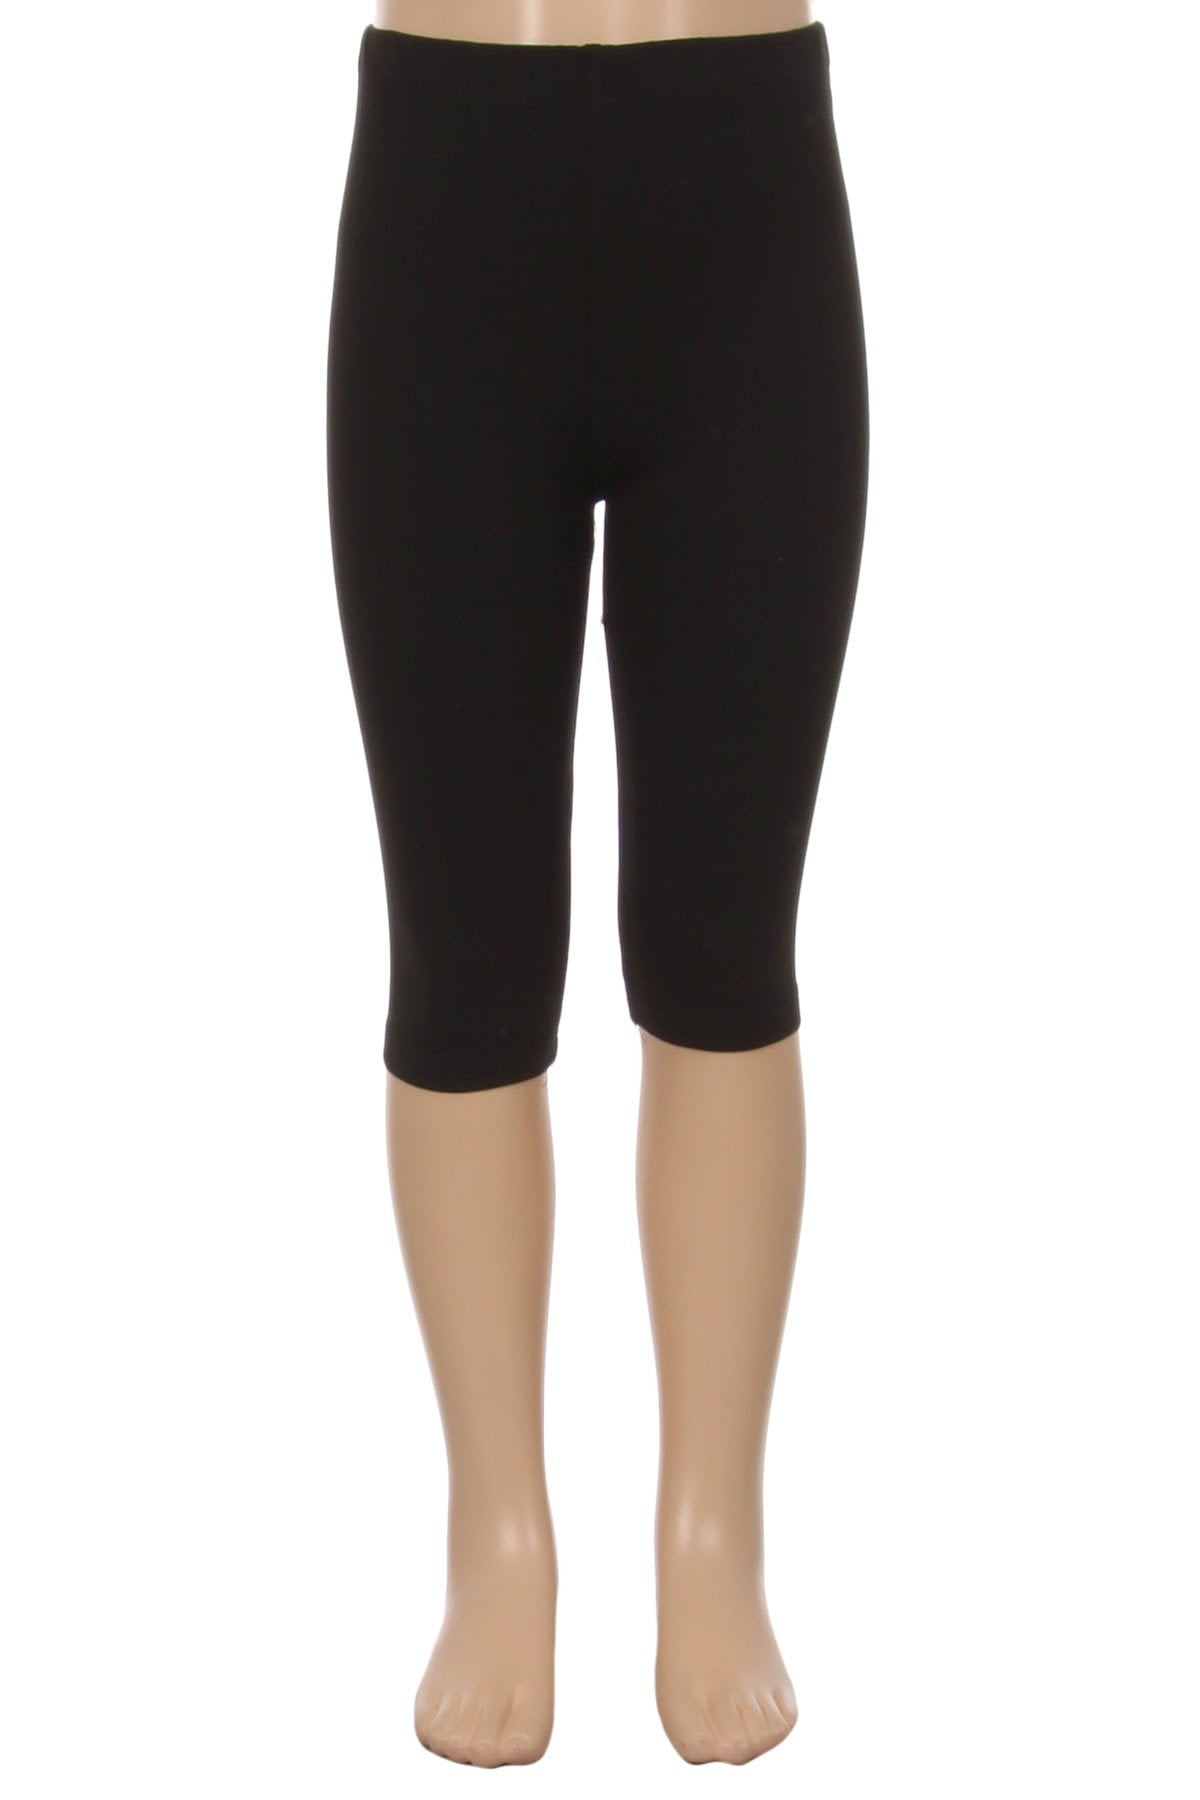 Girl's Best Solid Black Capri Leggings: S and L Leggings MomMe and More